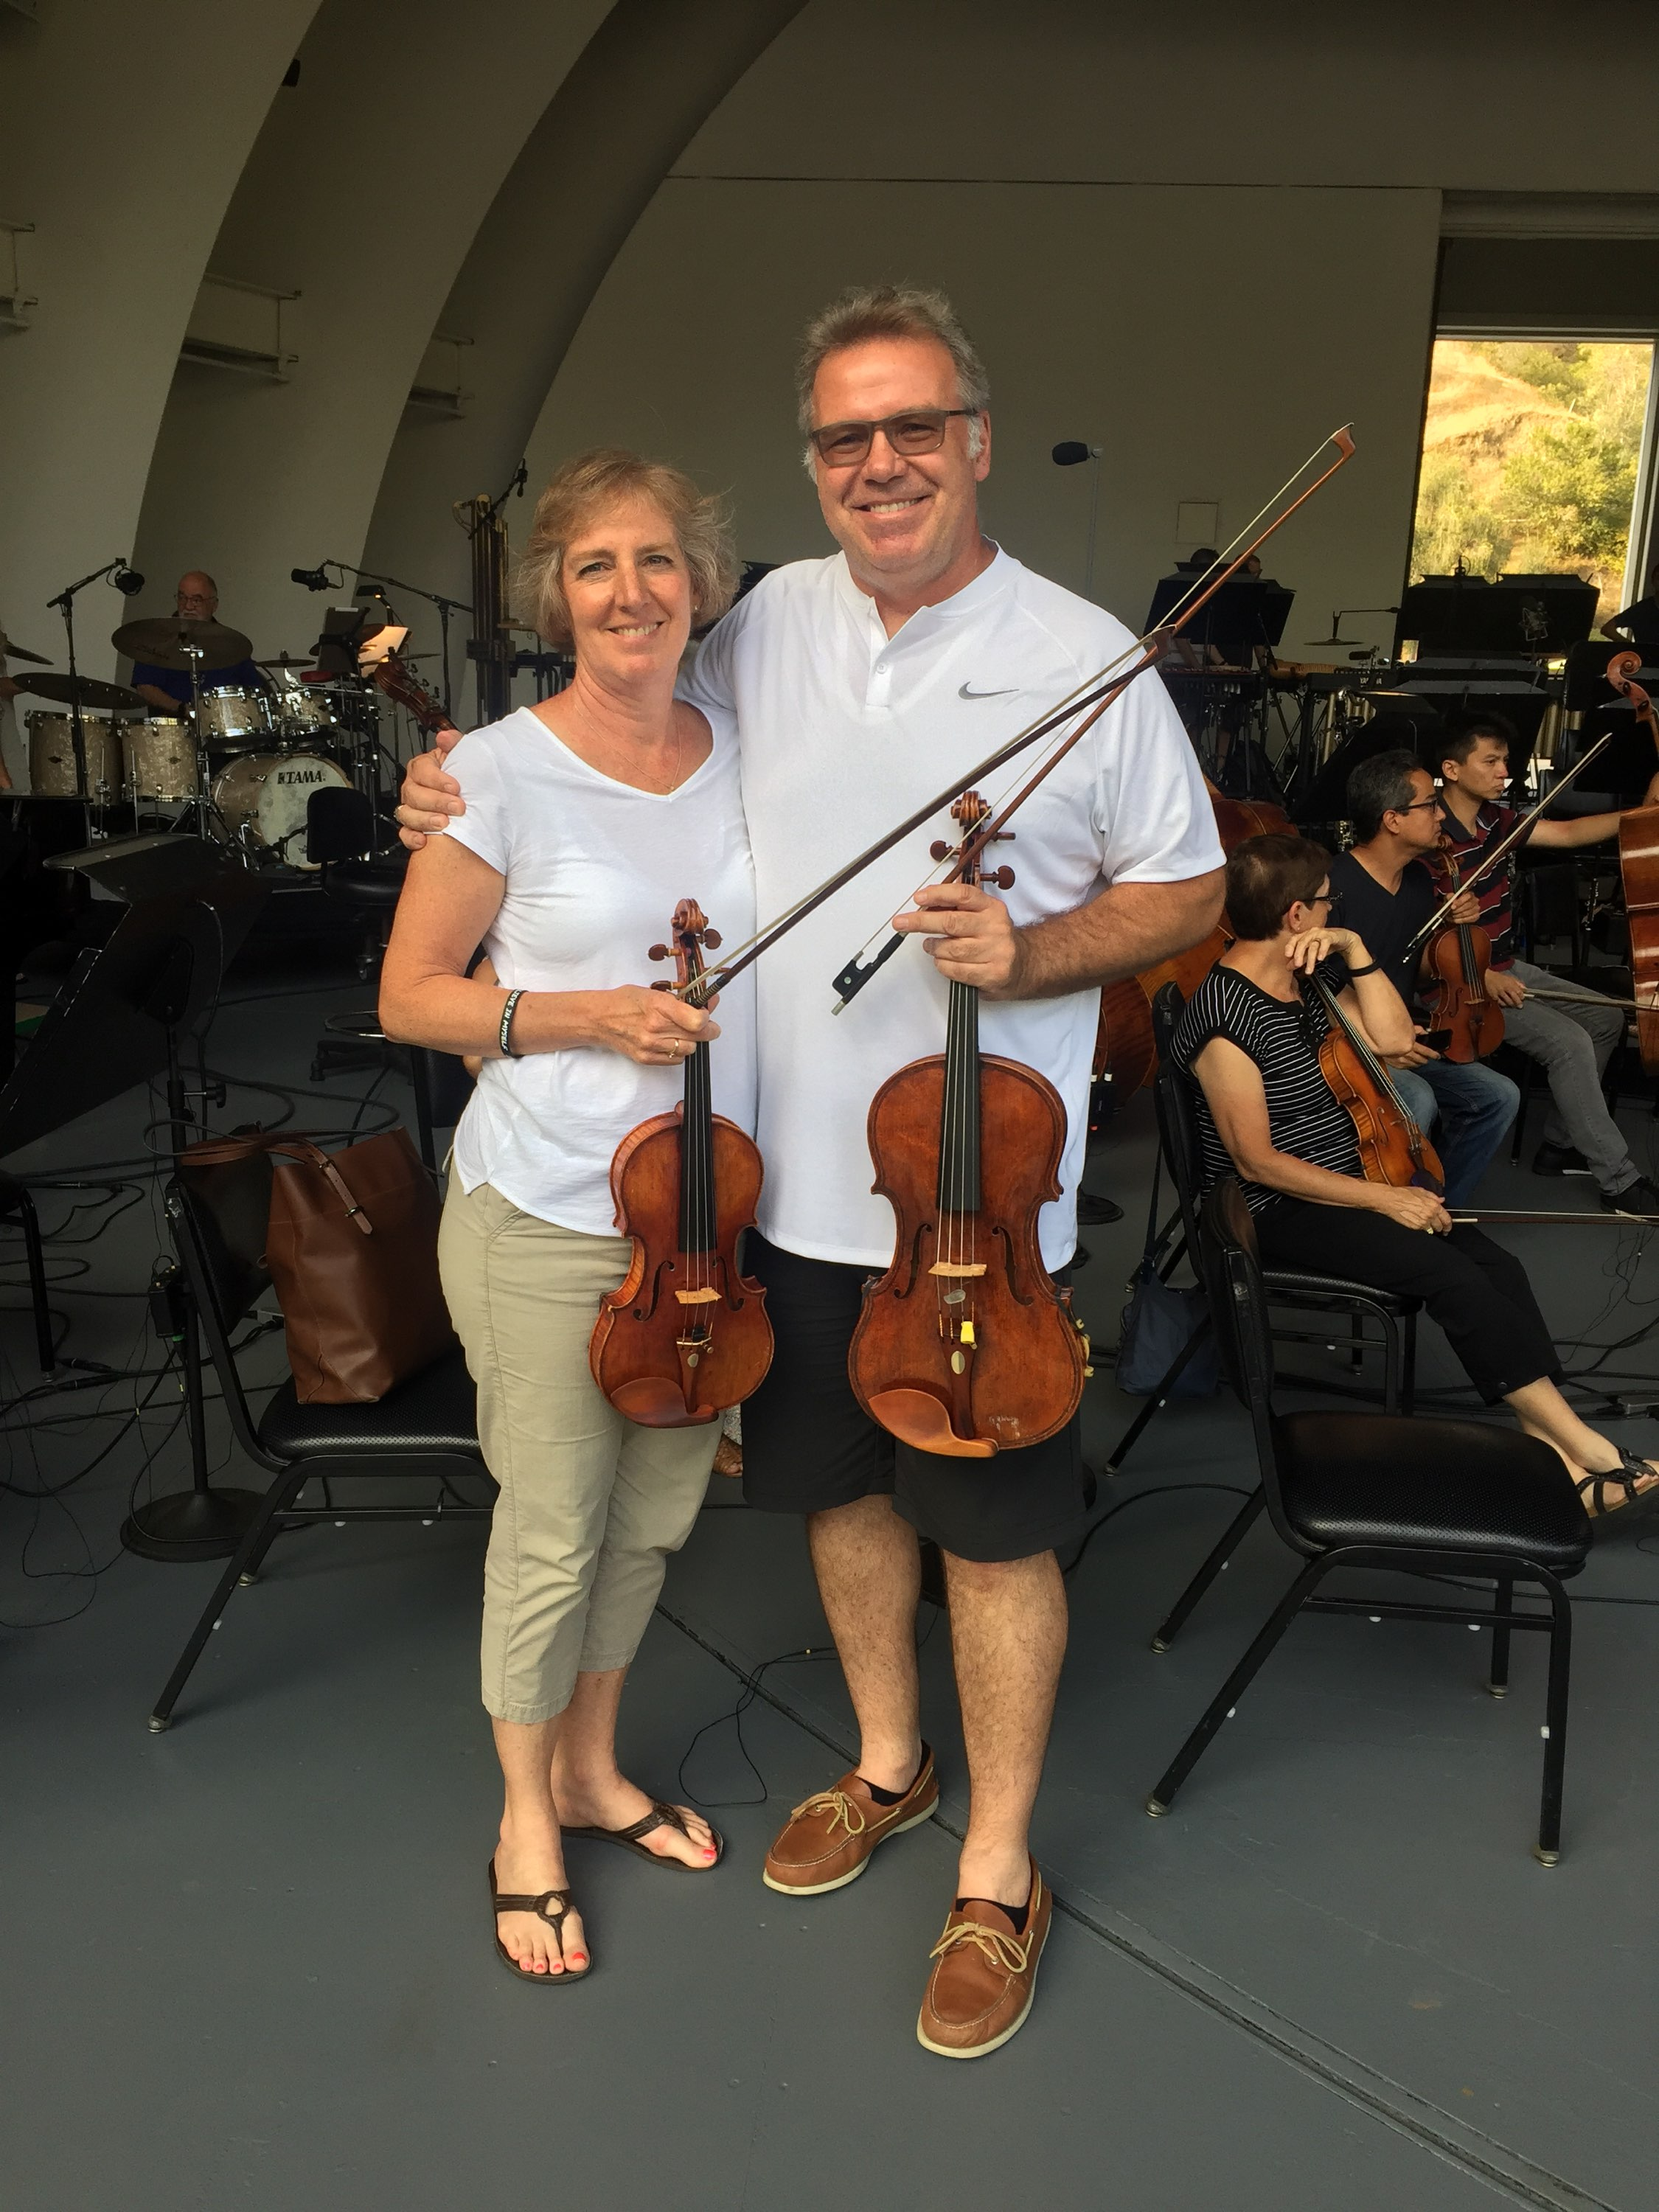 Stacy and Mick Wetzel have spent over 30 years as professional orchestra mates. Working and rehearsing together each day has brought them closer together as Latter-day Saints.